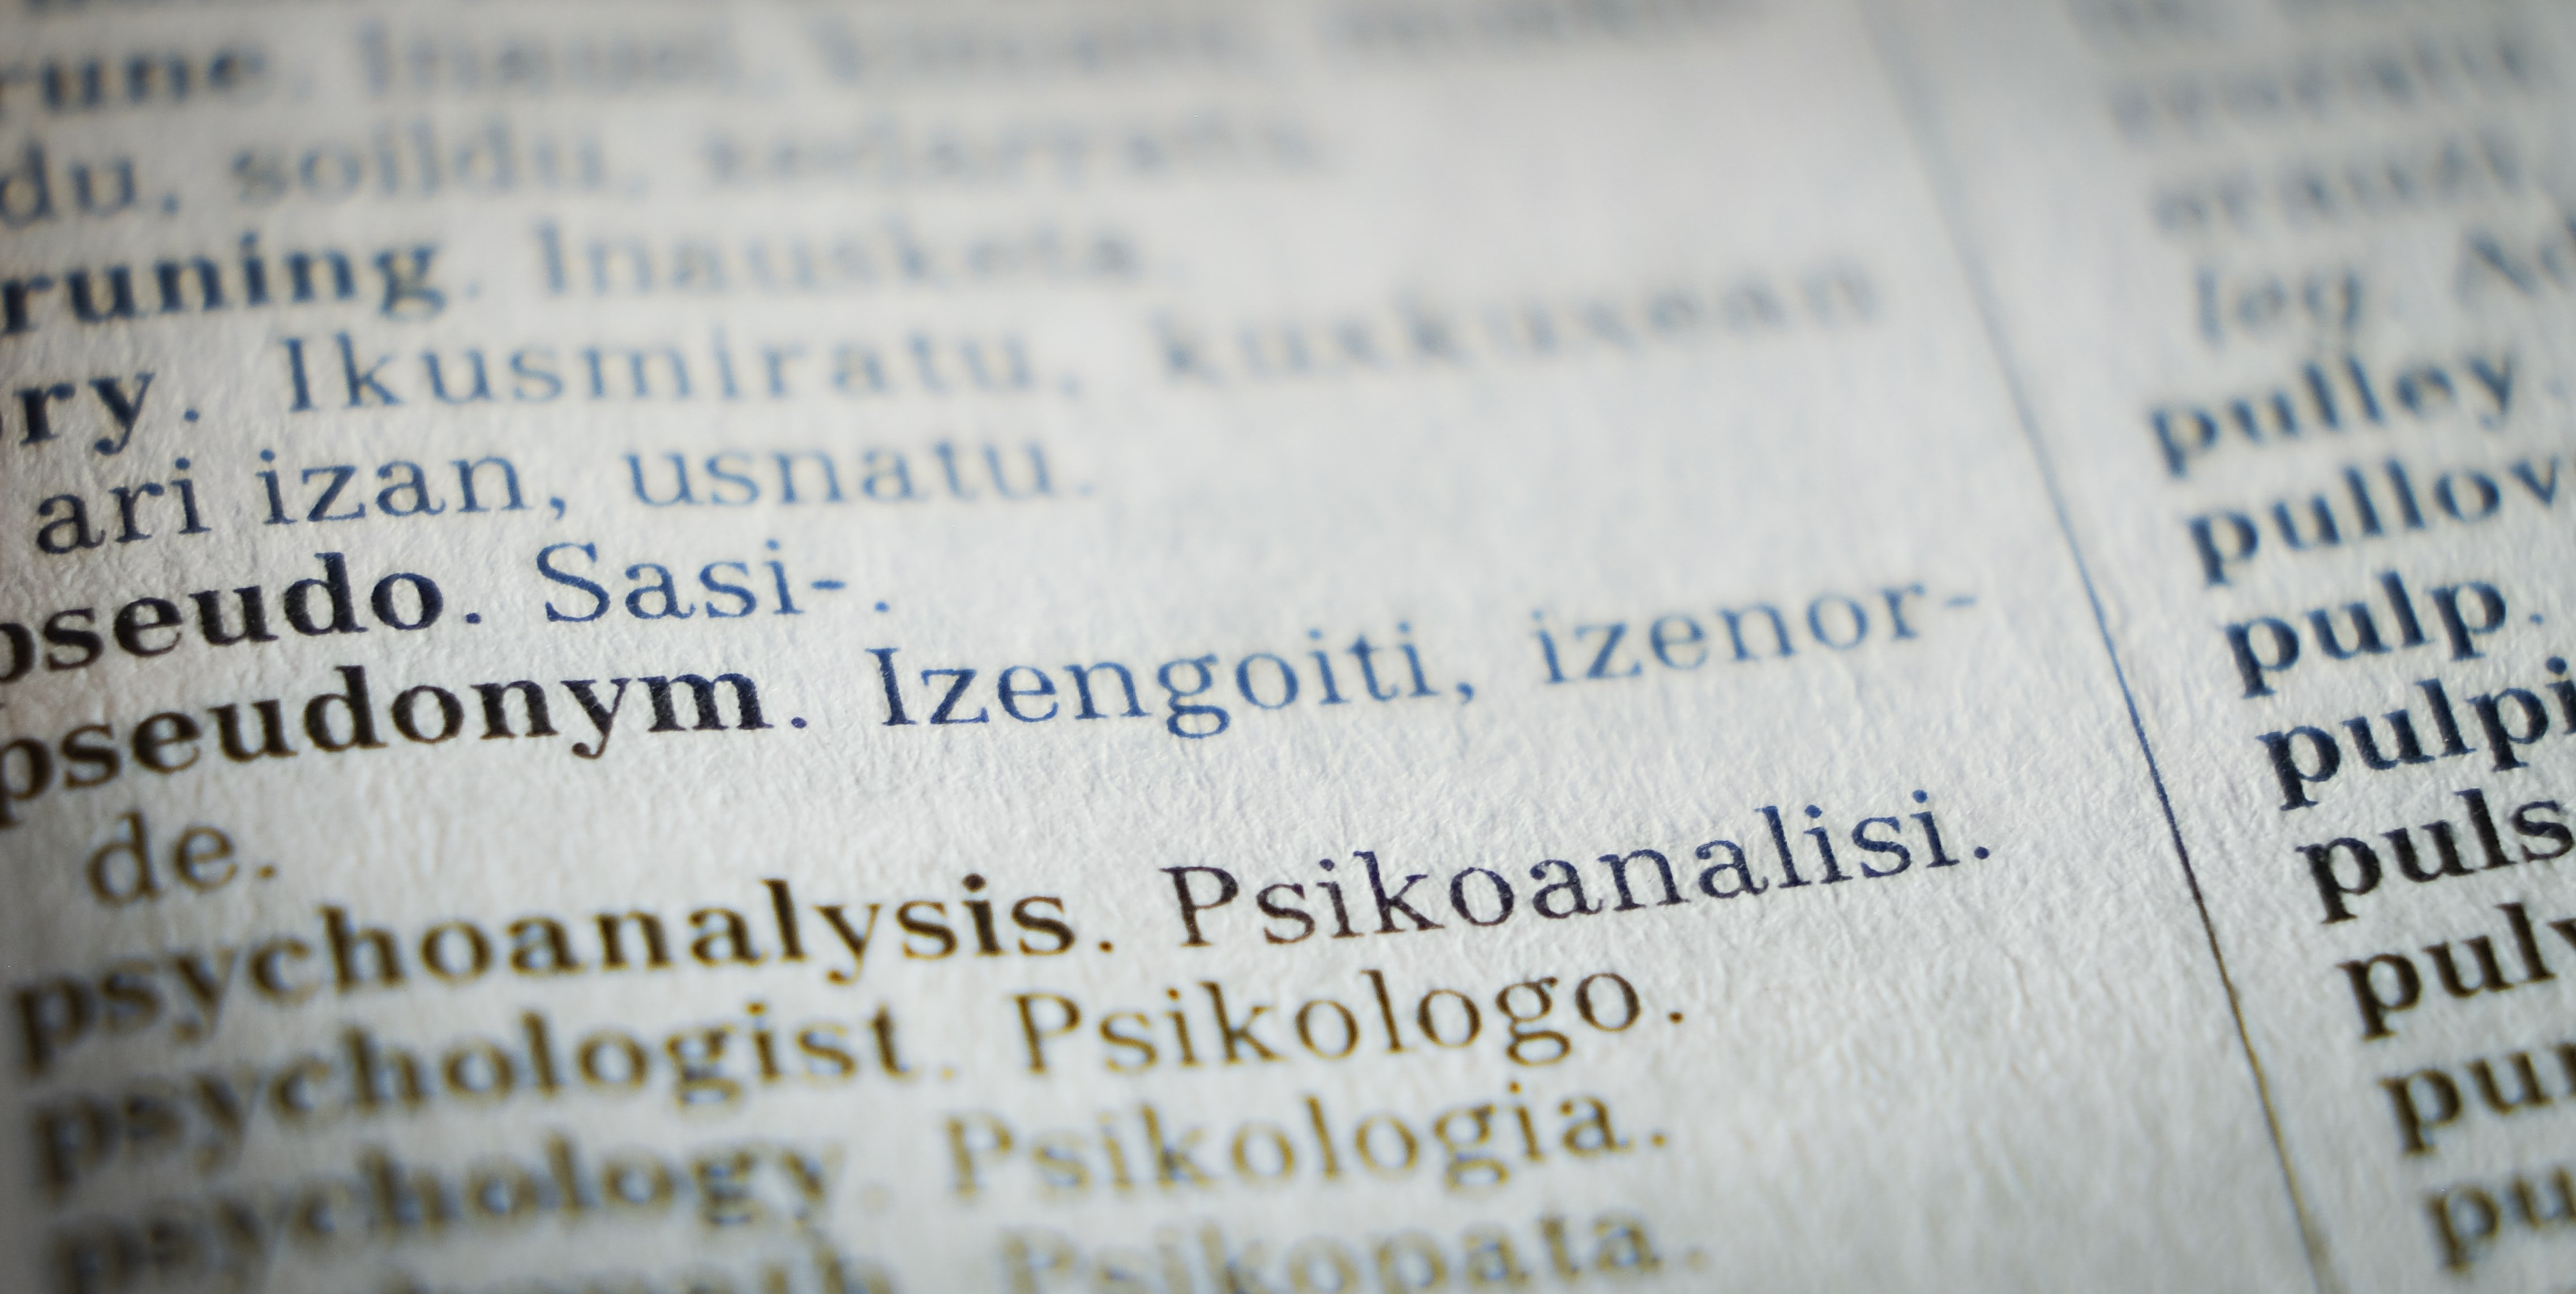 The image is a camera shot of a translation dictionary between English and a Eastern European language.